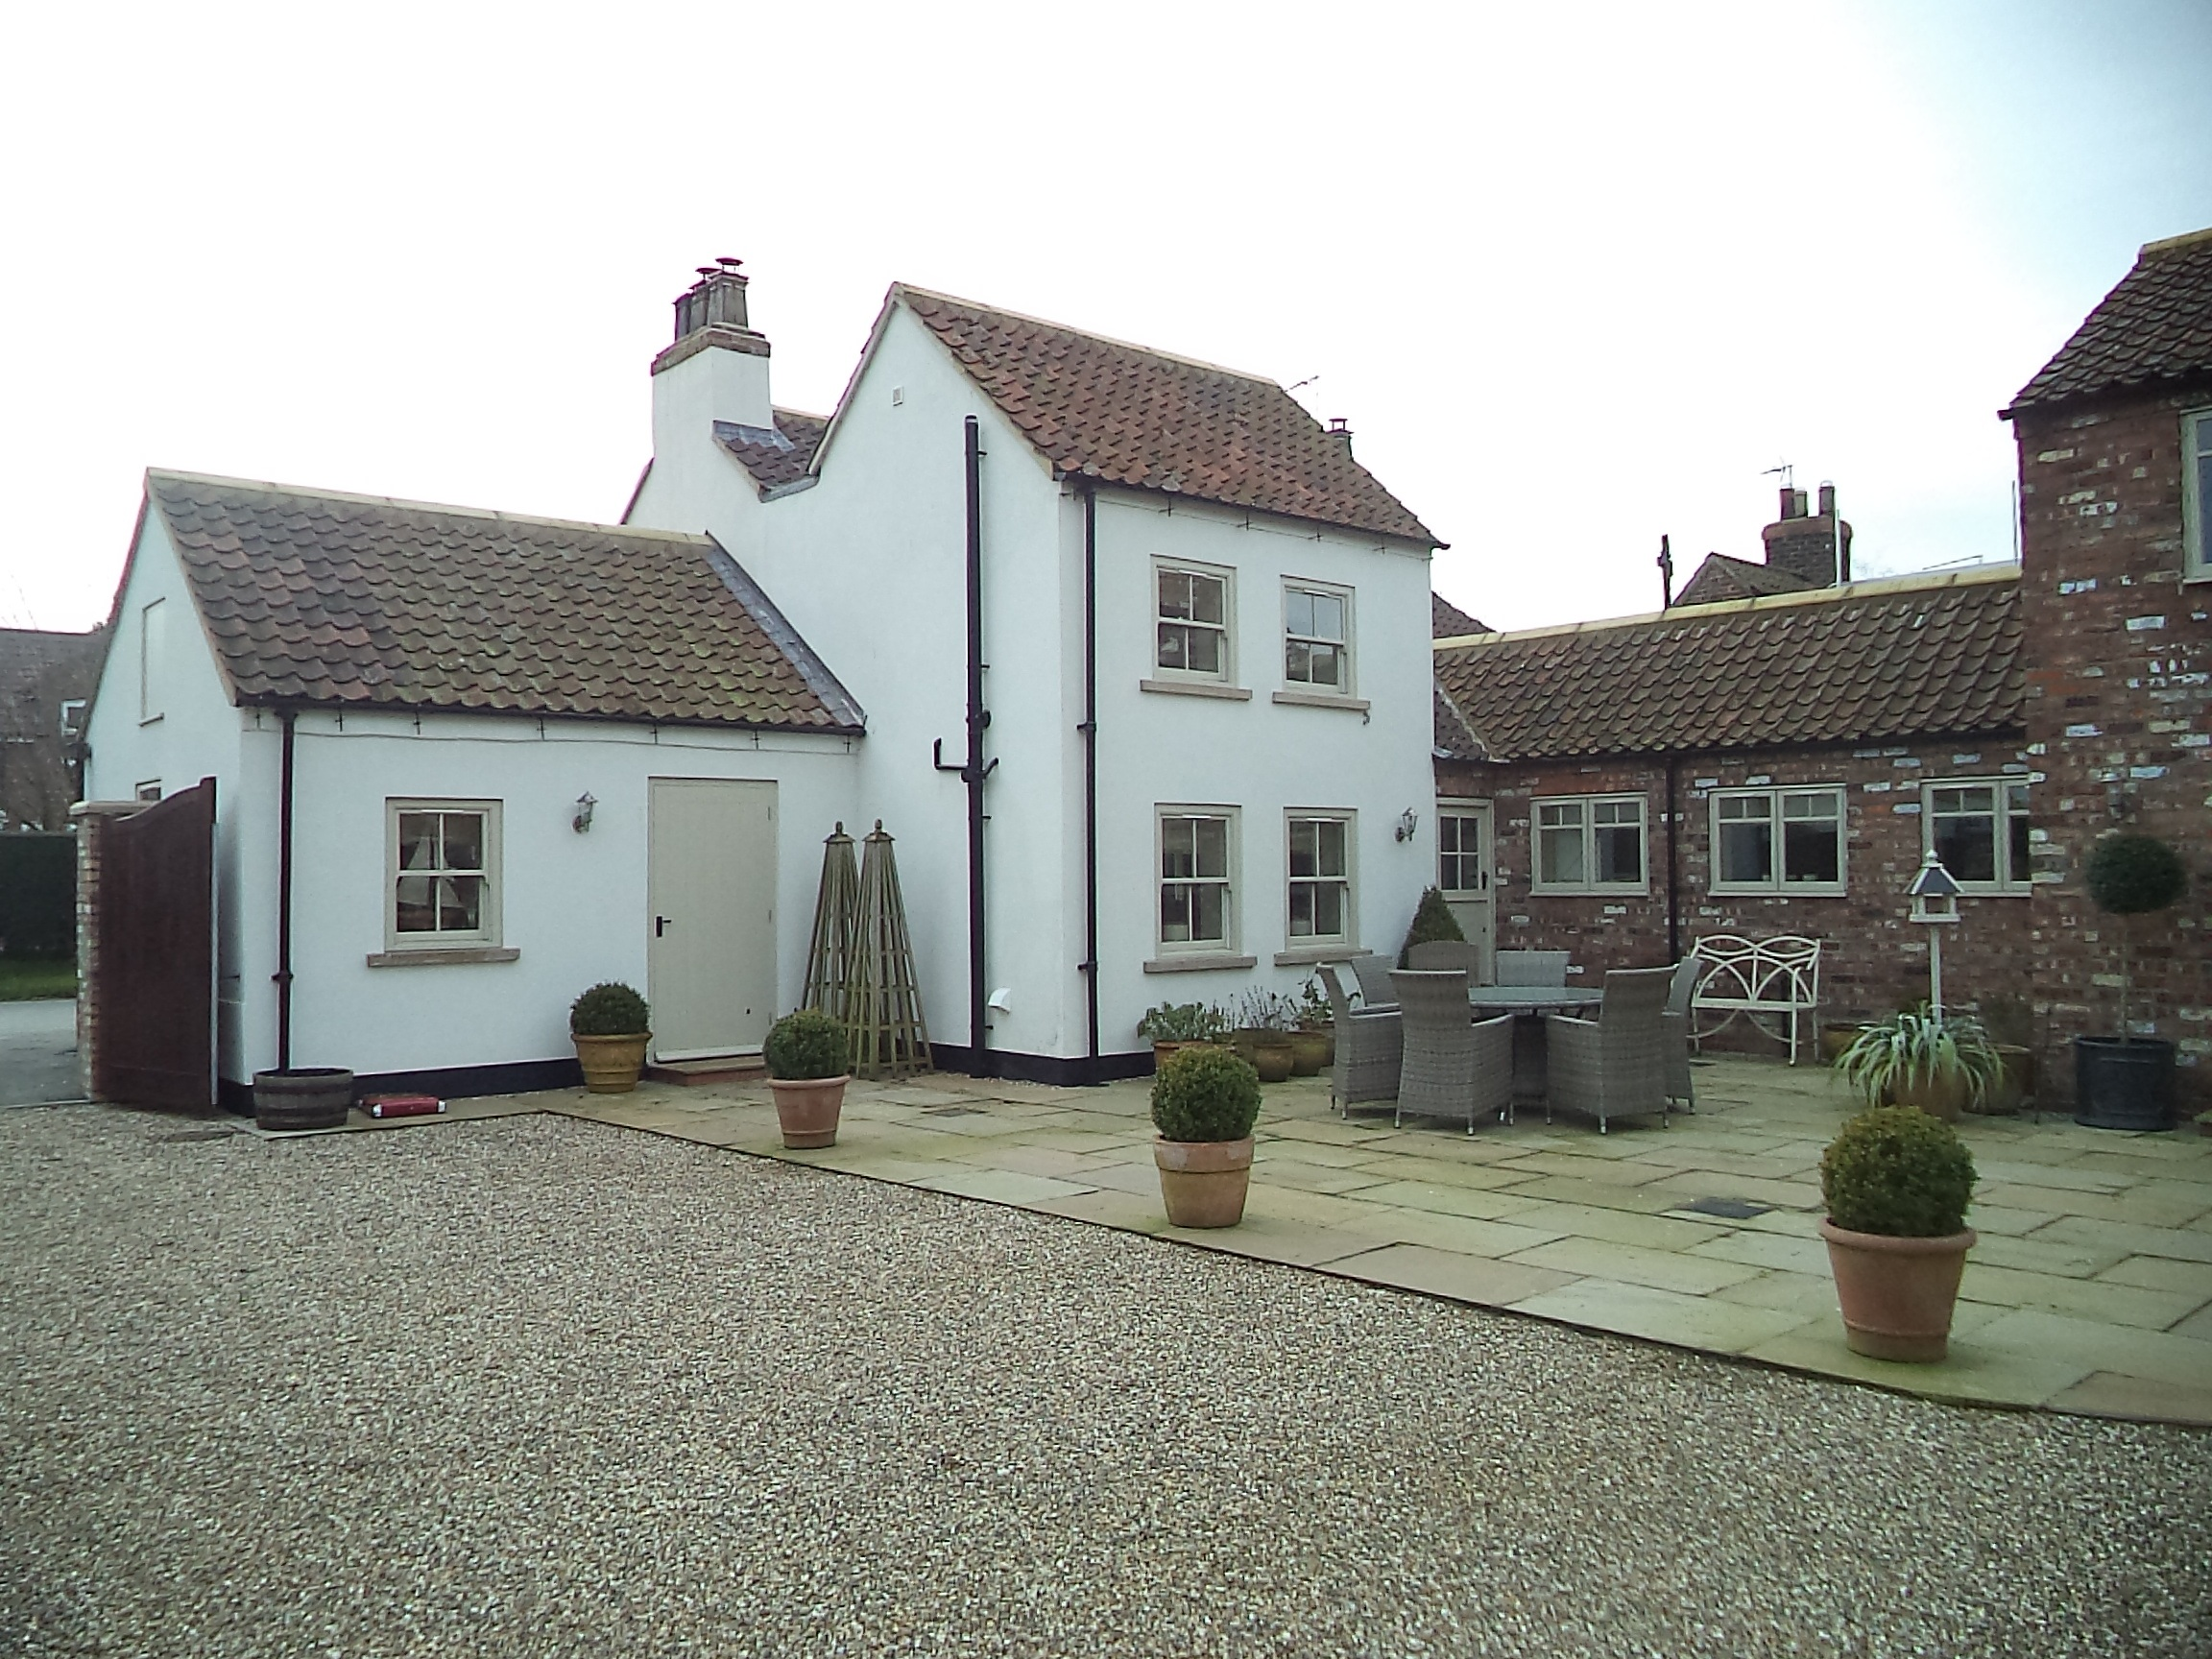 Rear of Pub after Redevelopment